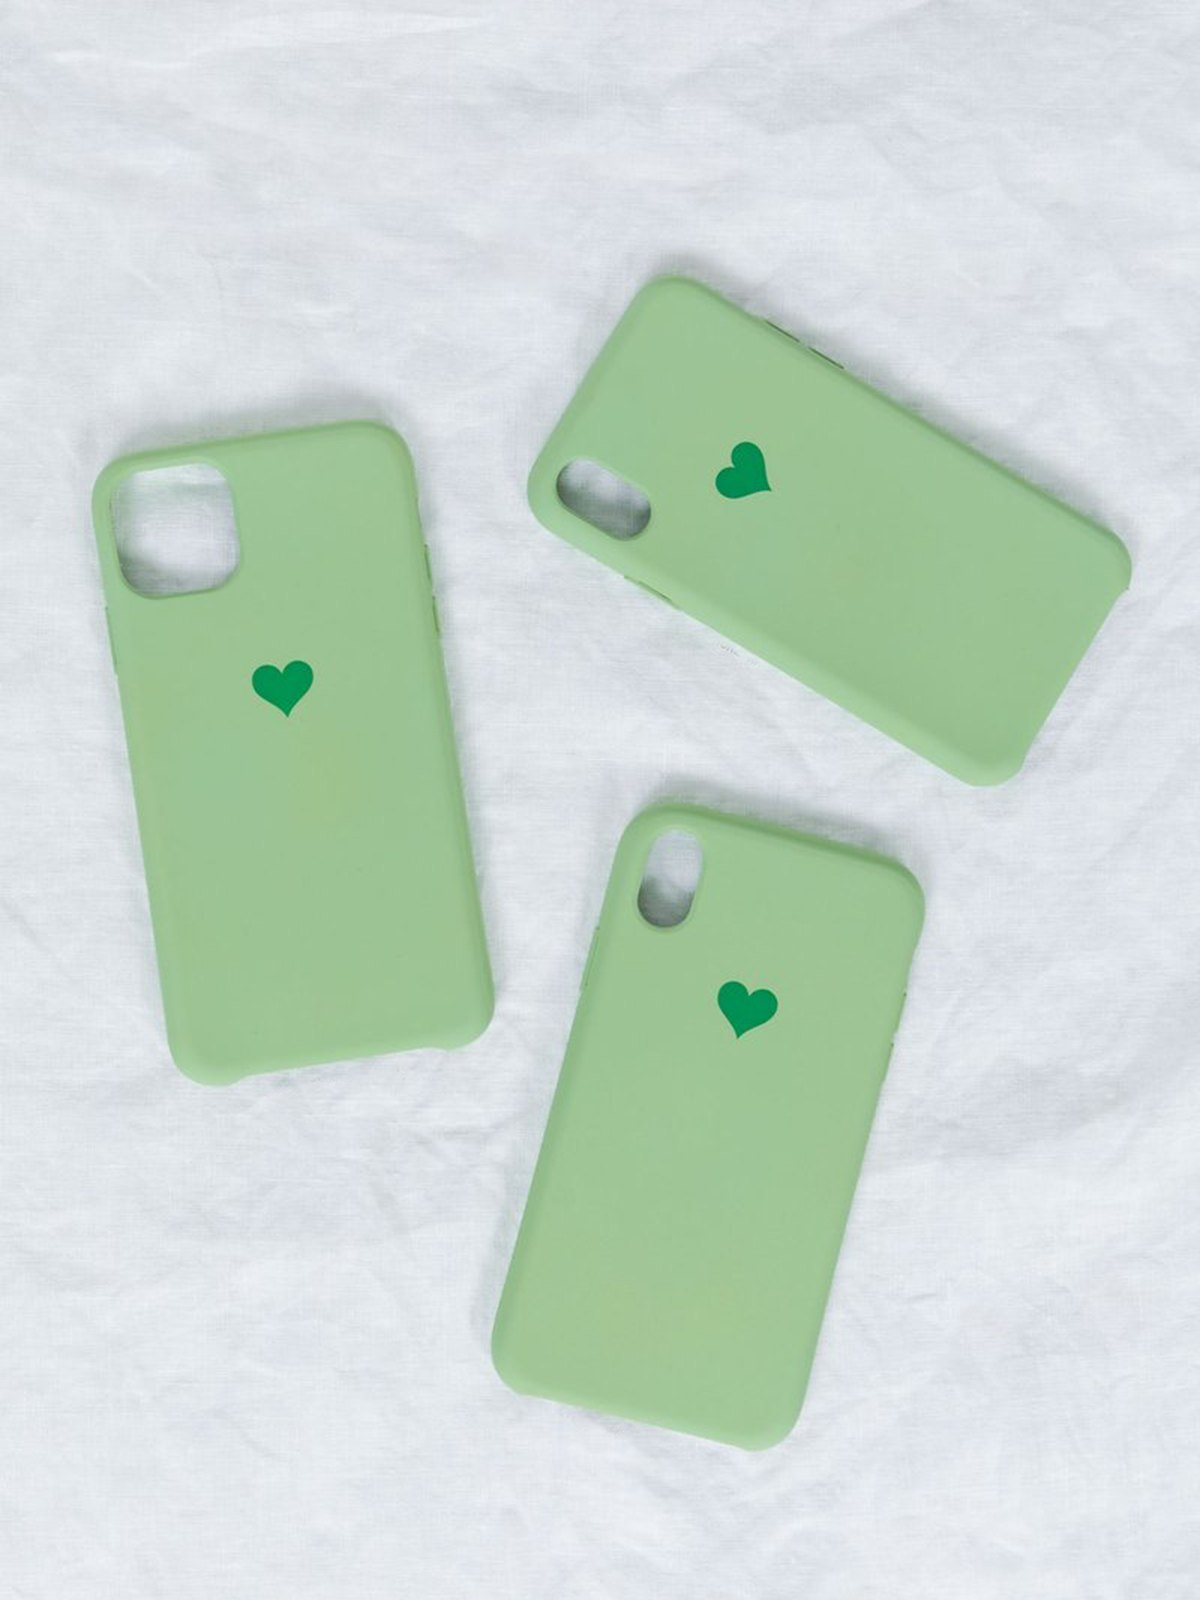 1Pcs Heart-shaped Iphone Cases - Green iPhone 11